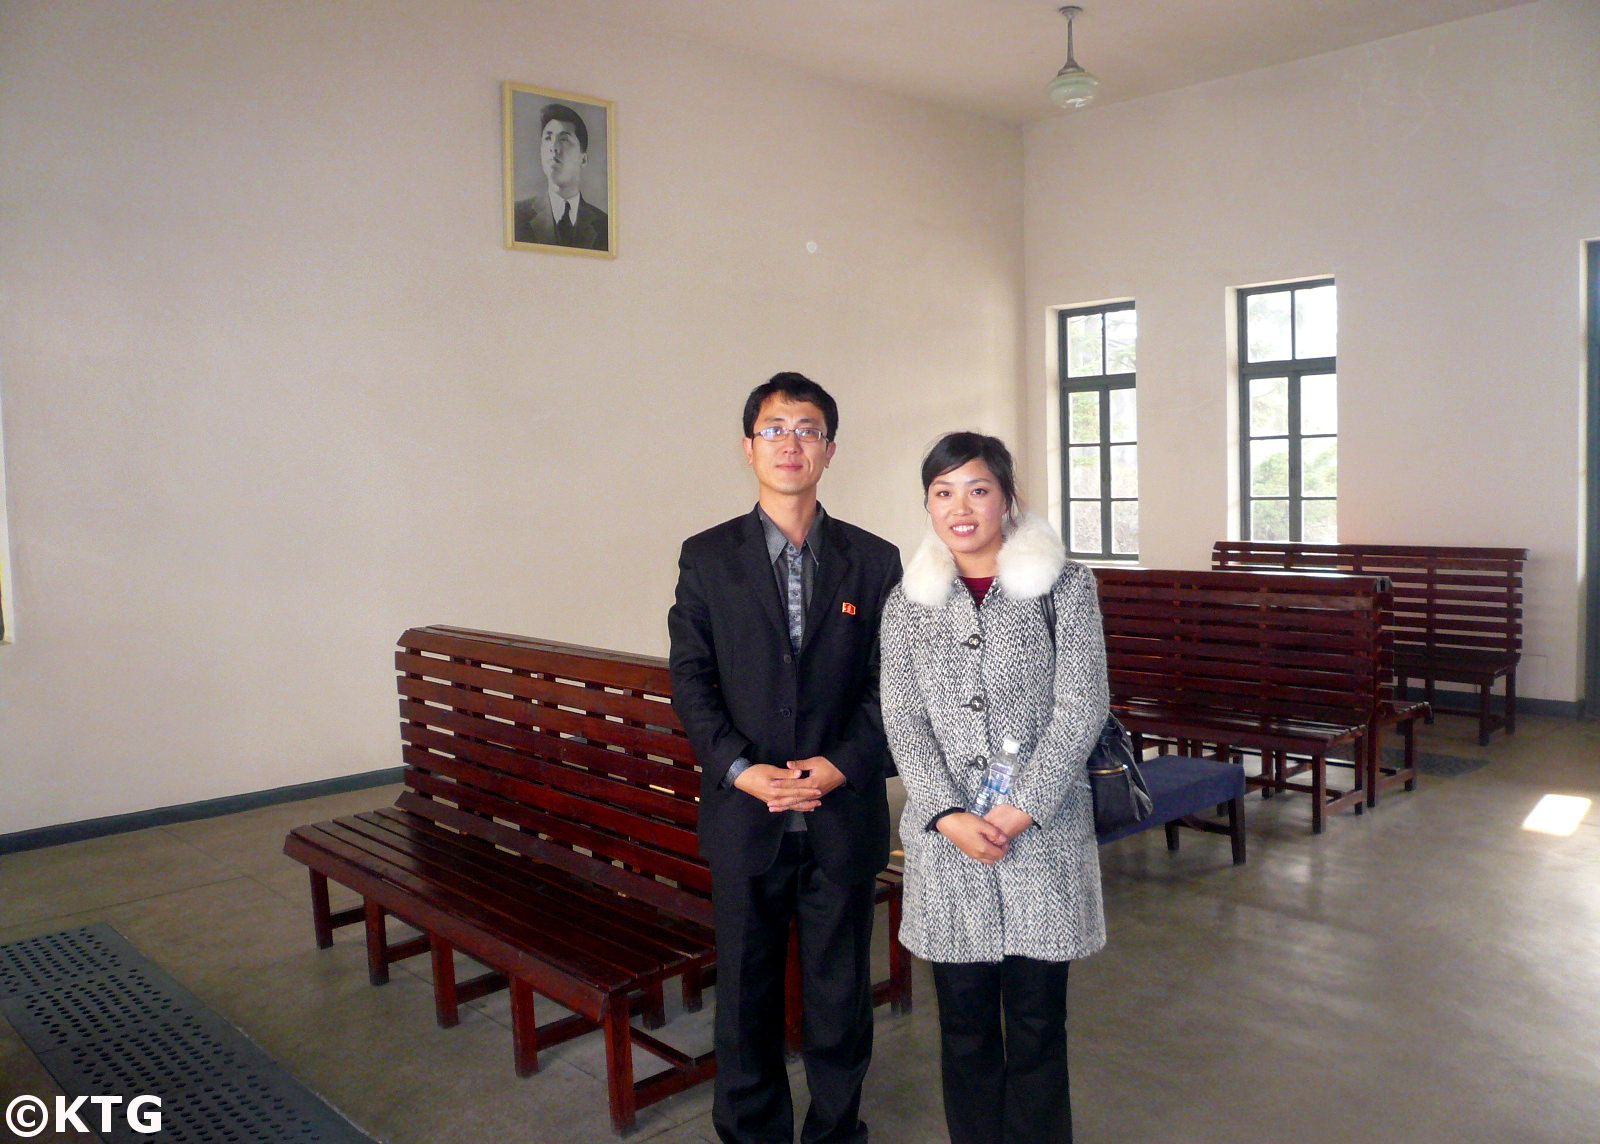 North Korean guides at the train station in Wonsan, DPRK. Picture taken by KTG Tours